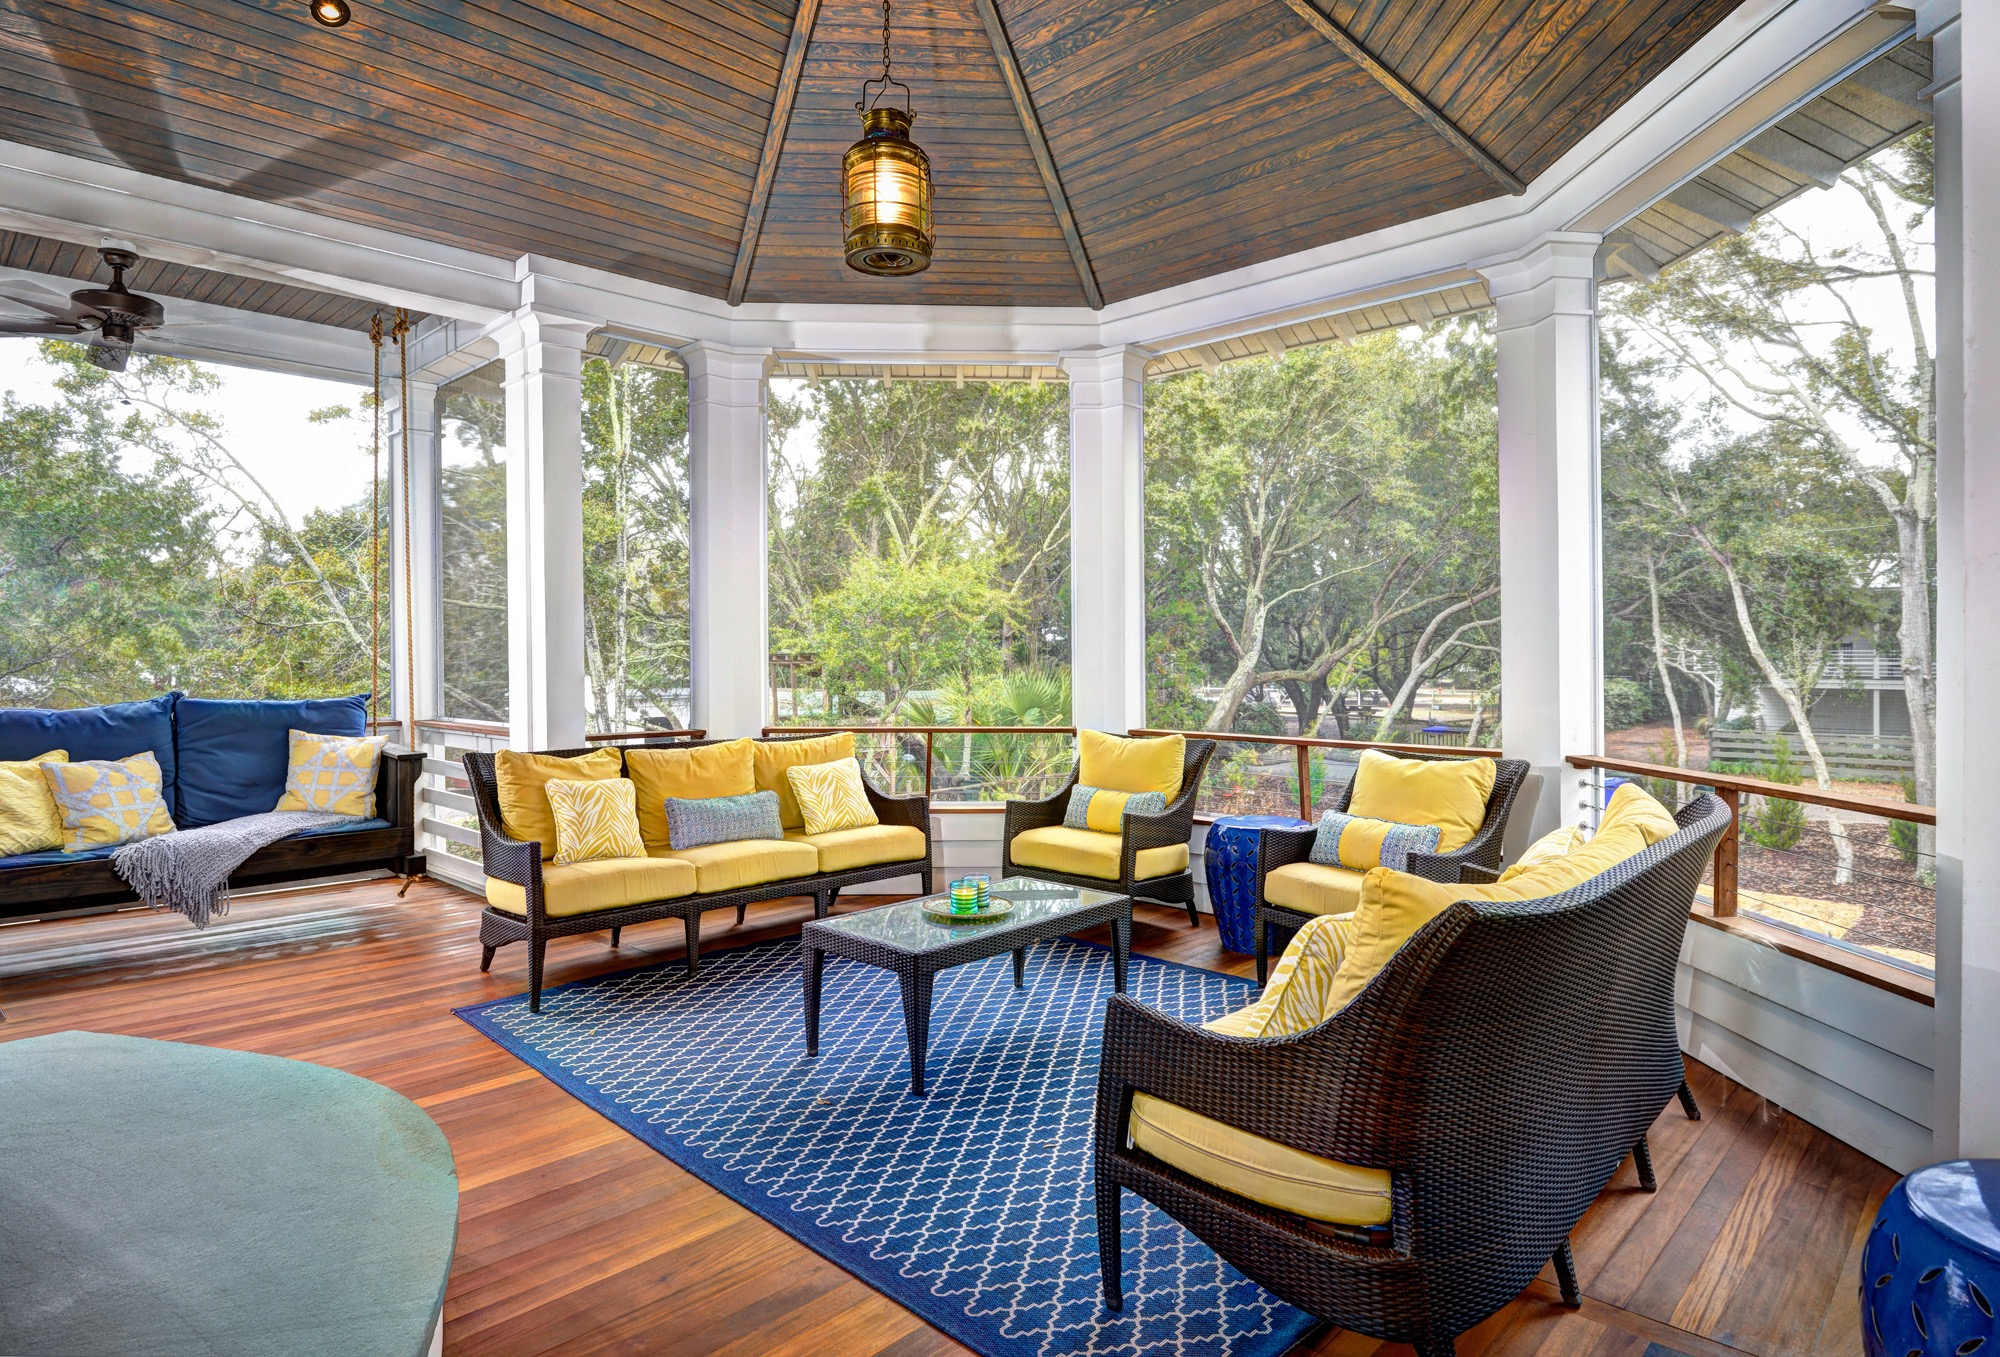 Cozy Yellow Thick Cushioned Chairs (Image 4 of 11)